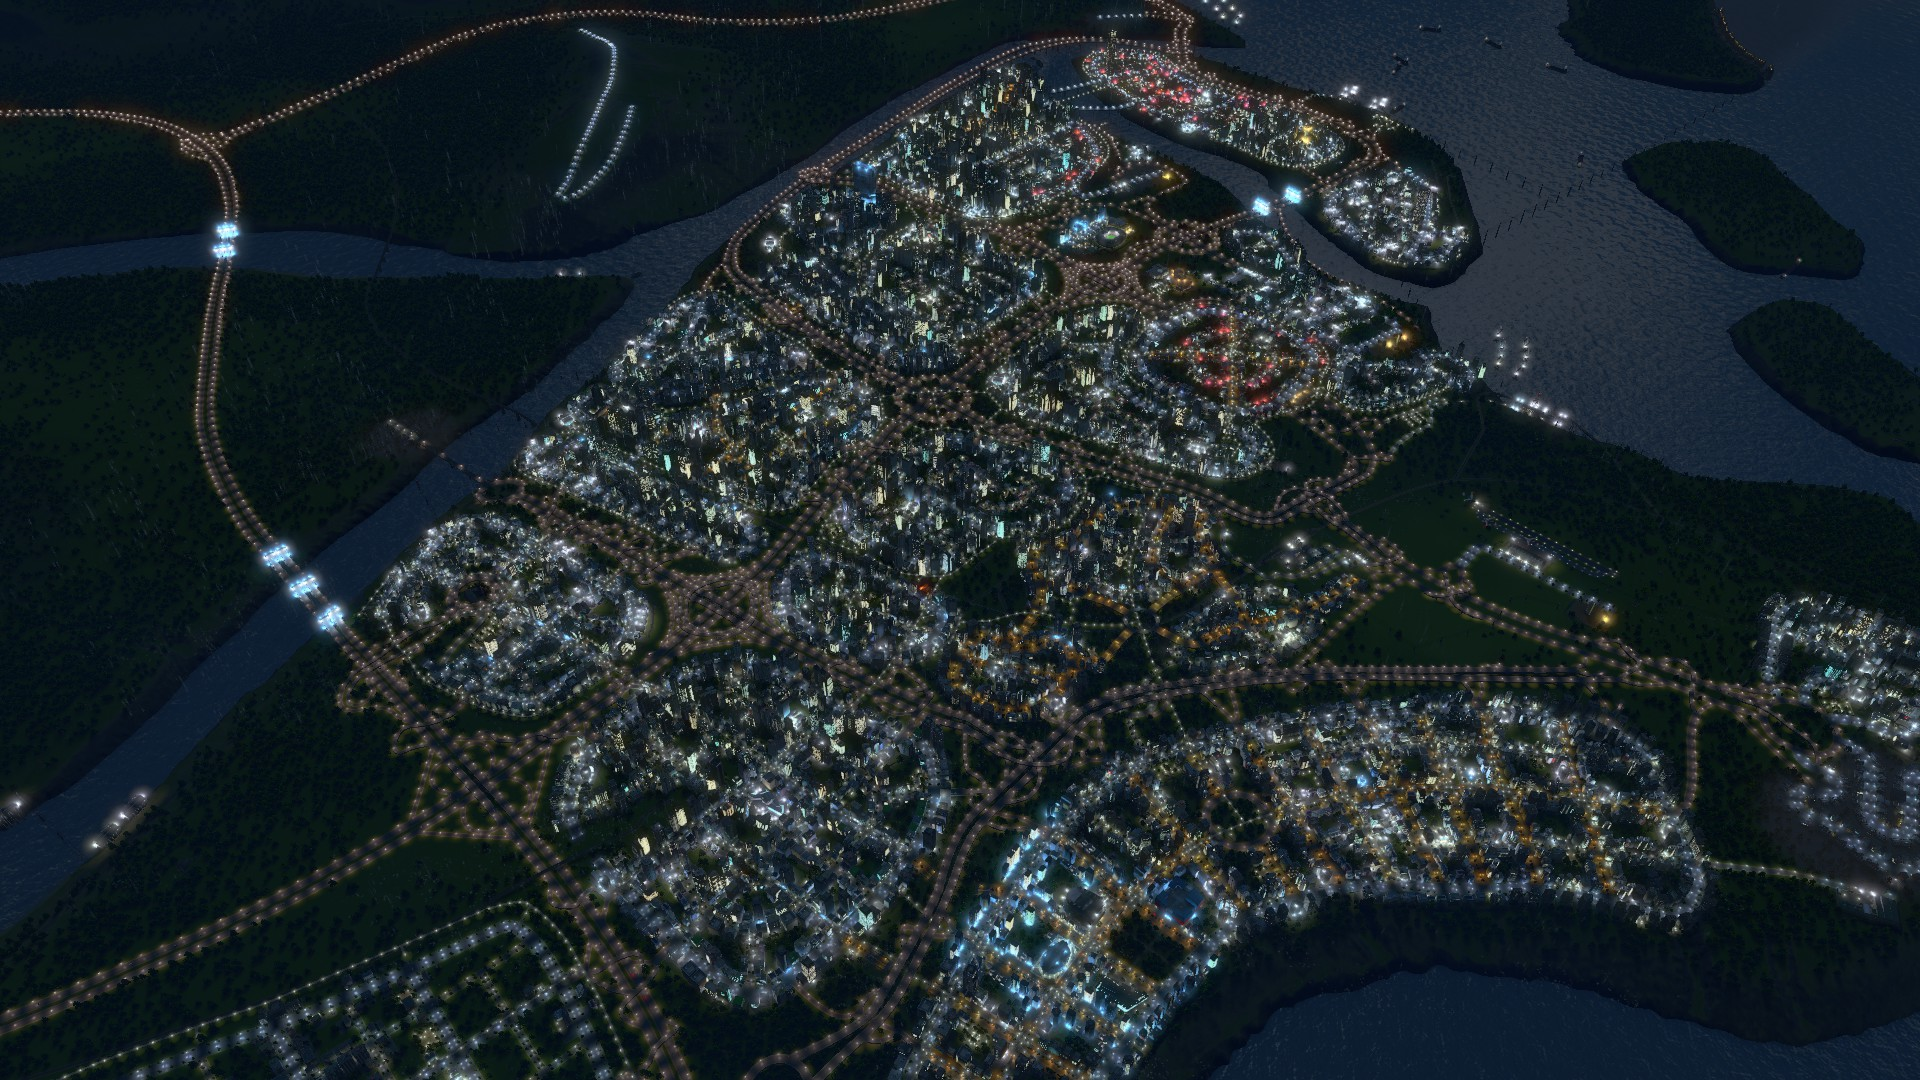 1,000,000 citizens in cities skylines